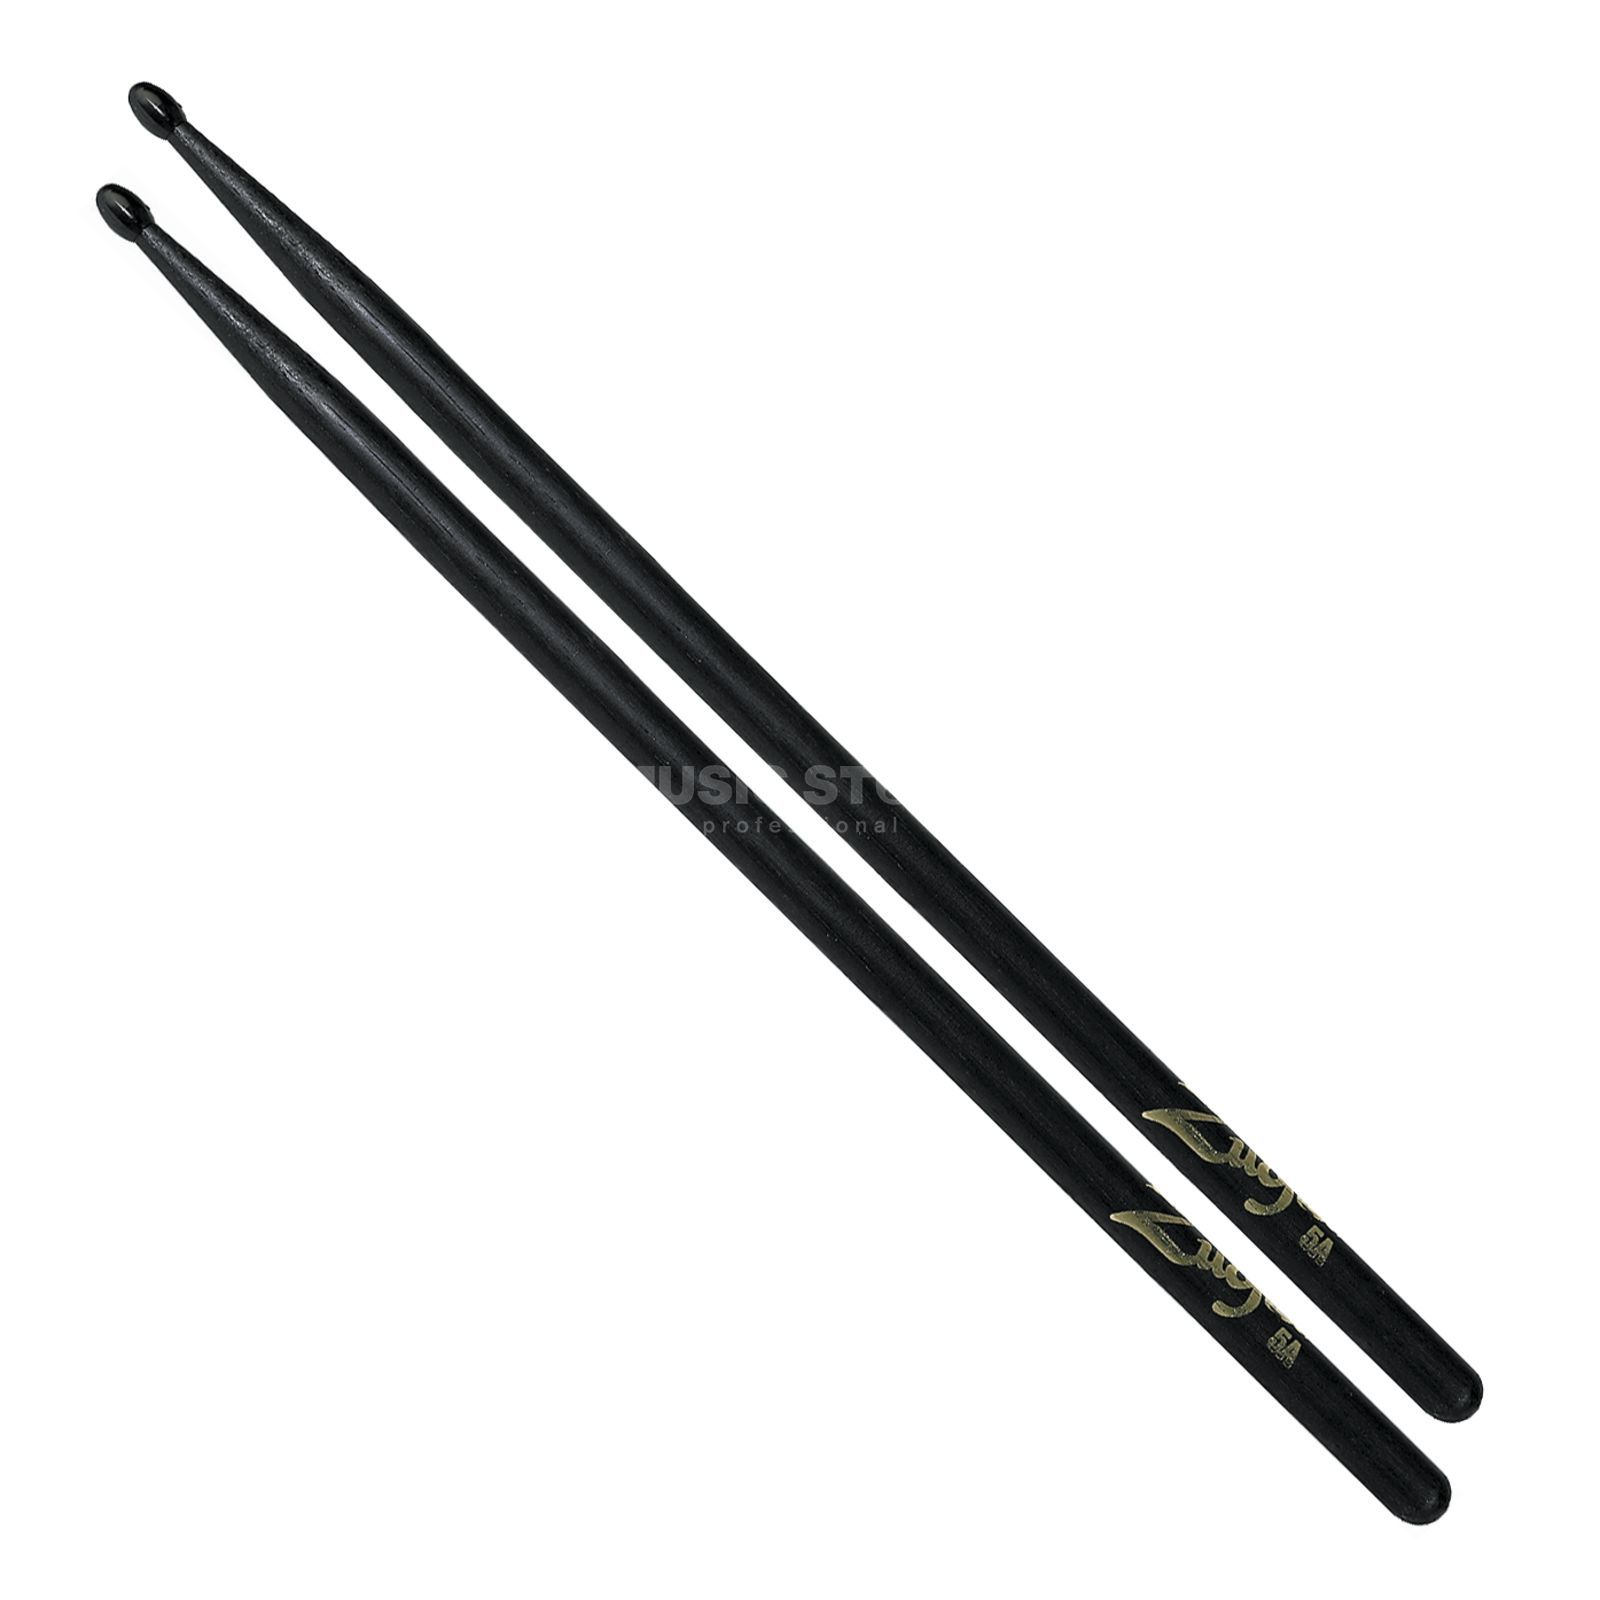 Zildjian 5AN Hickory Sticks, Black Black Finish, Nylon Tip Immagine prodotto